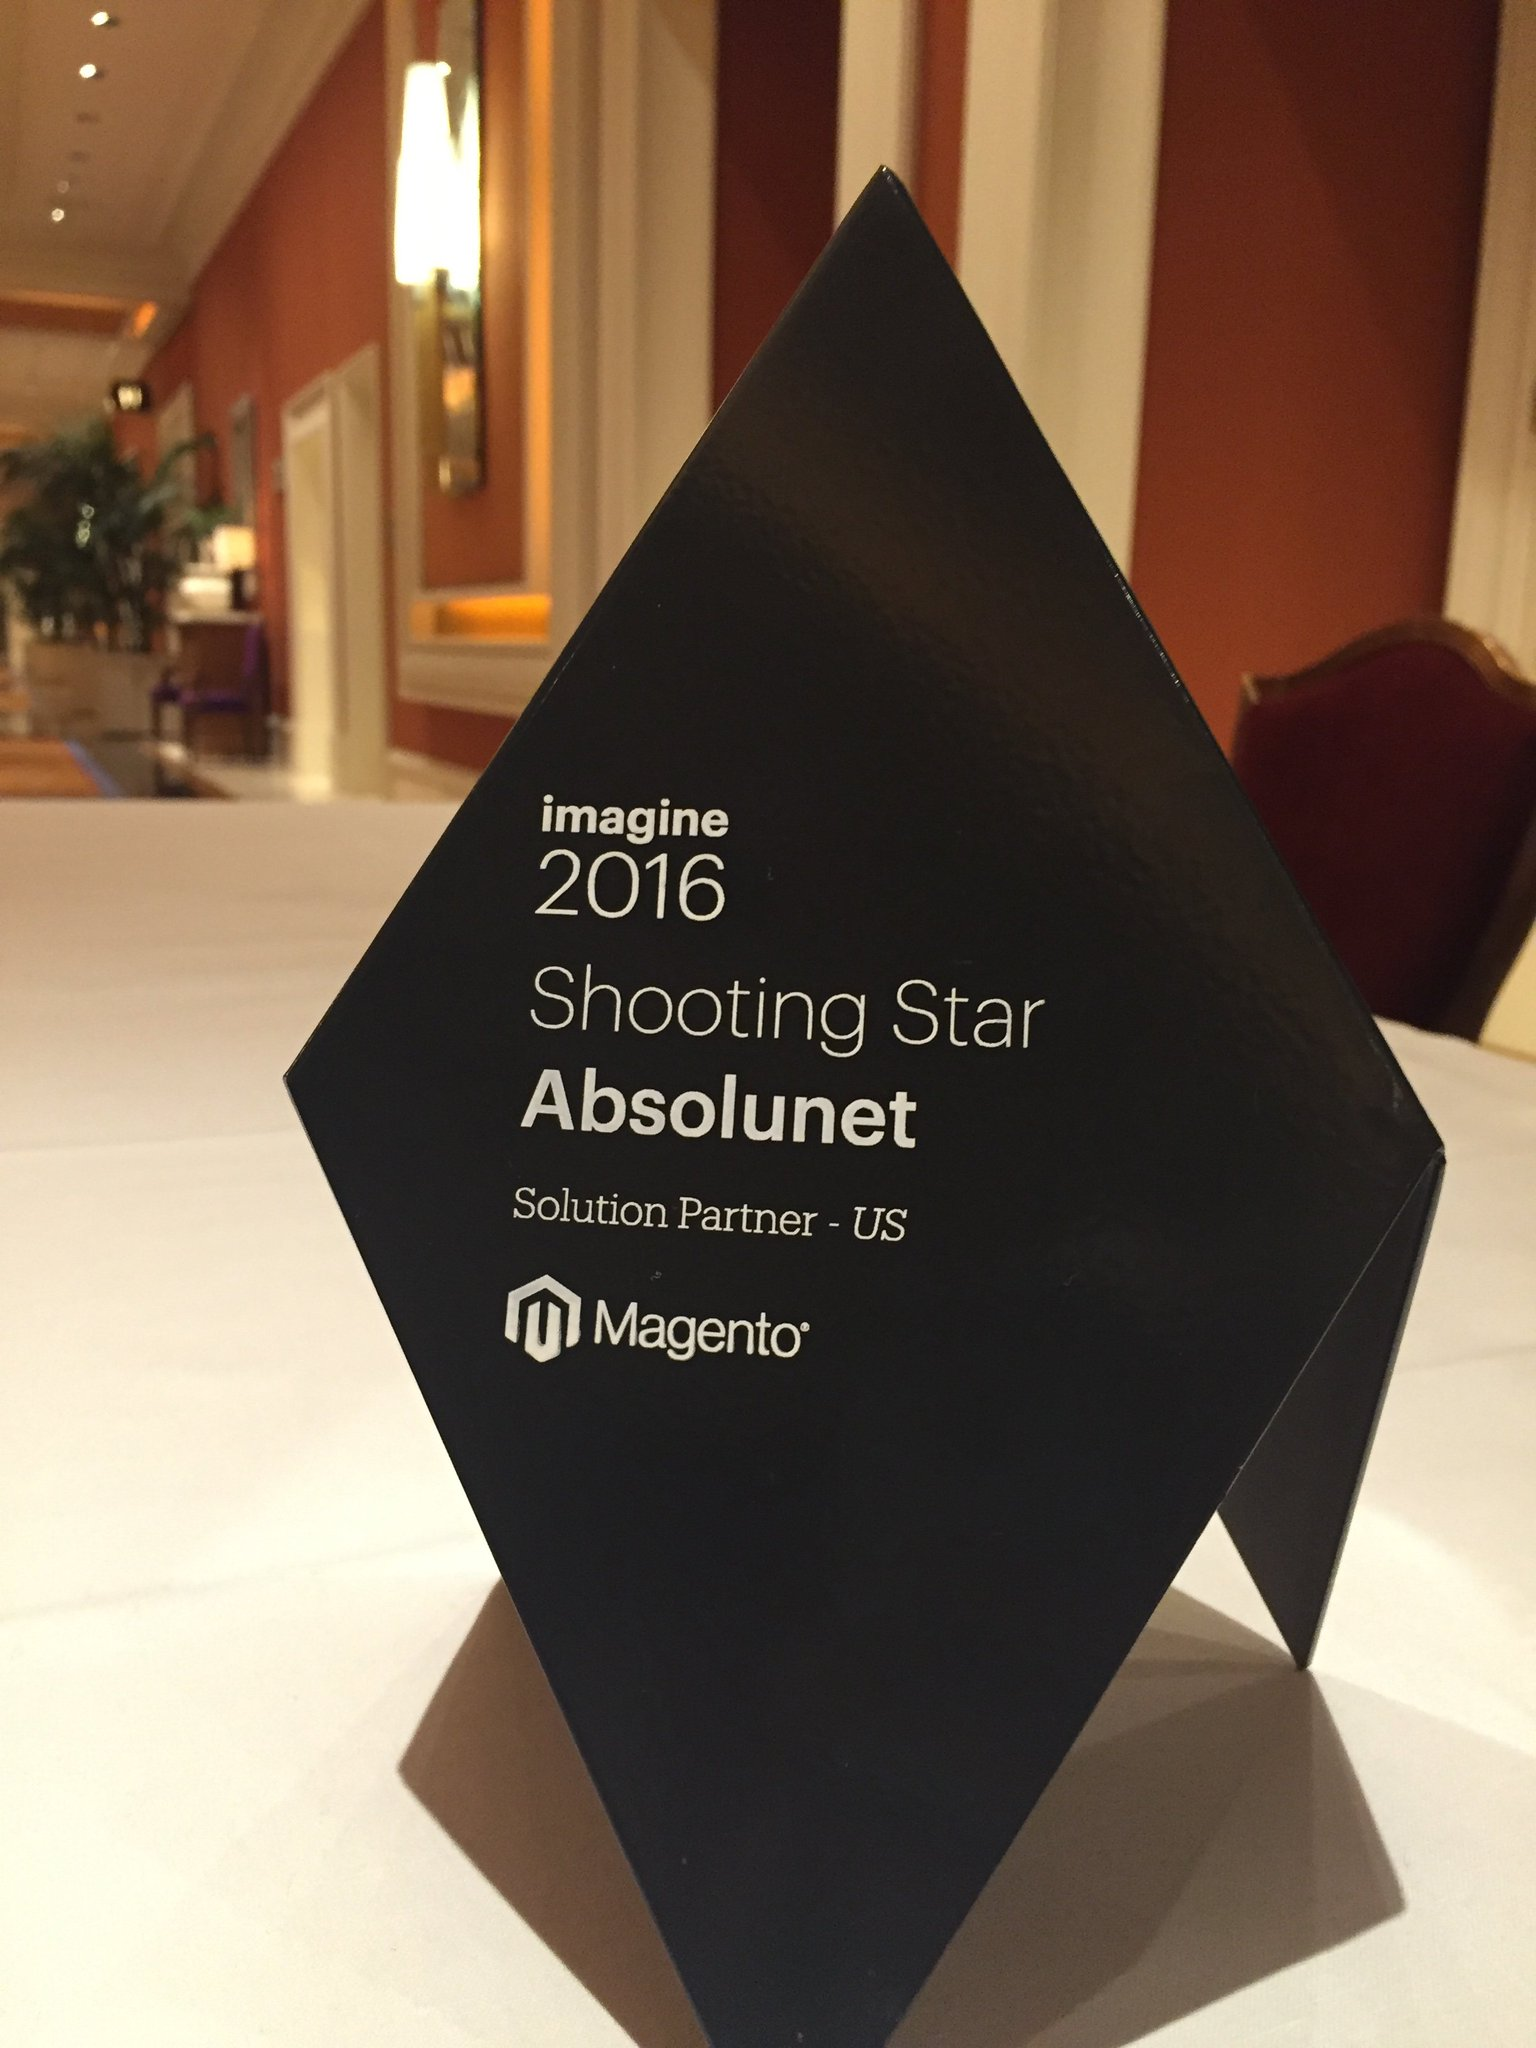 MTLbuzz: TR: @Absolunet: Thank you for this award! Congratulations to our team! #MagentoImagine @magento https:/... https://t.co/y9yMIVWhW8